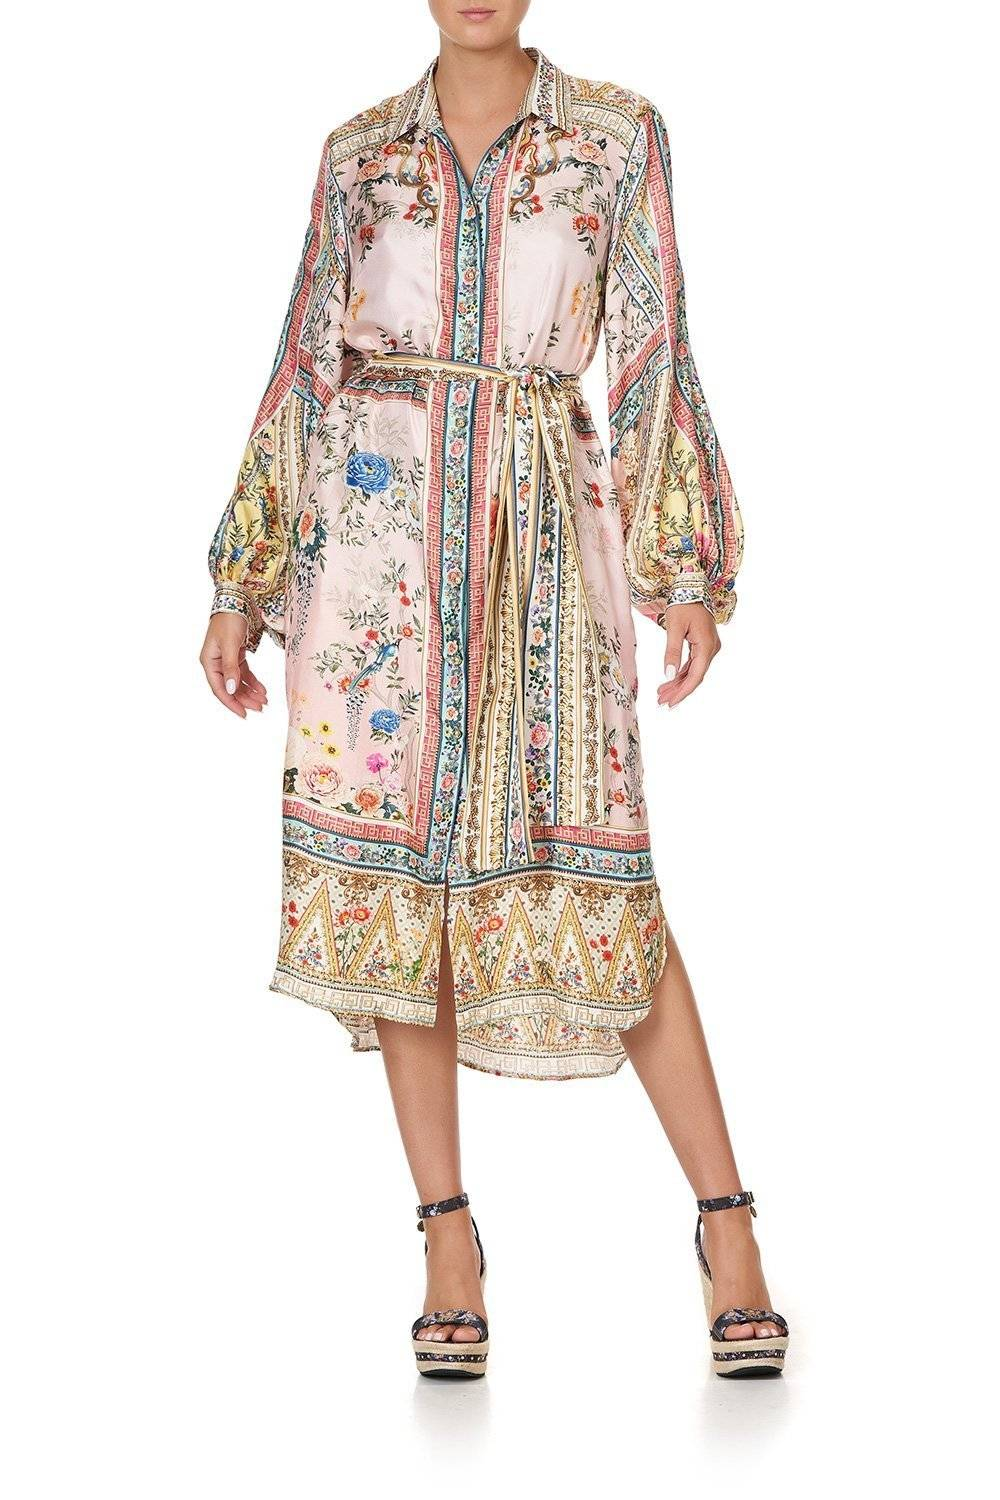 CAMILLA shirt dress with blue white and pink print